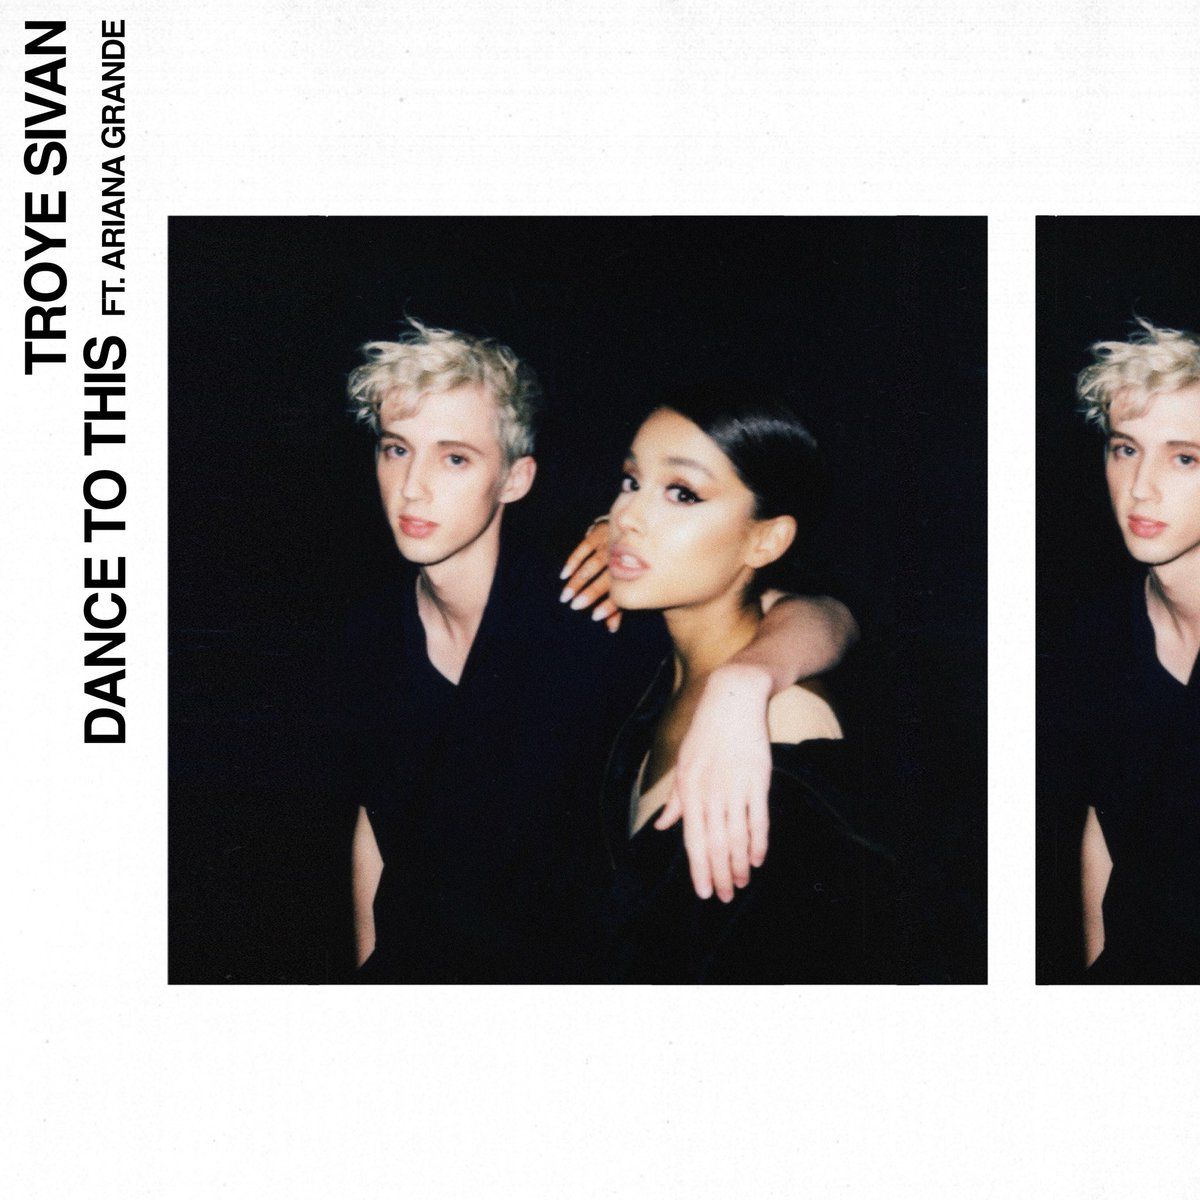 TroyeSivan-ArianaGrande-DanceToThis-Cover-VibesOfSilence